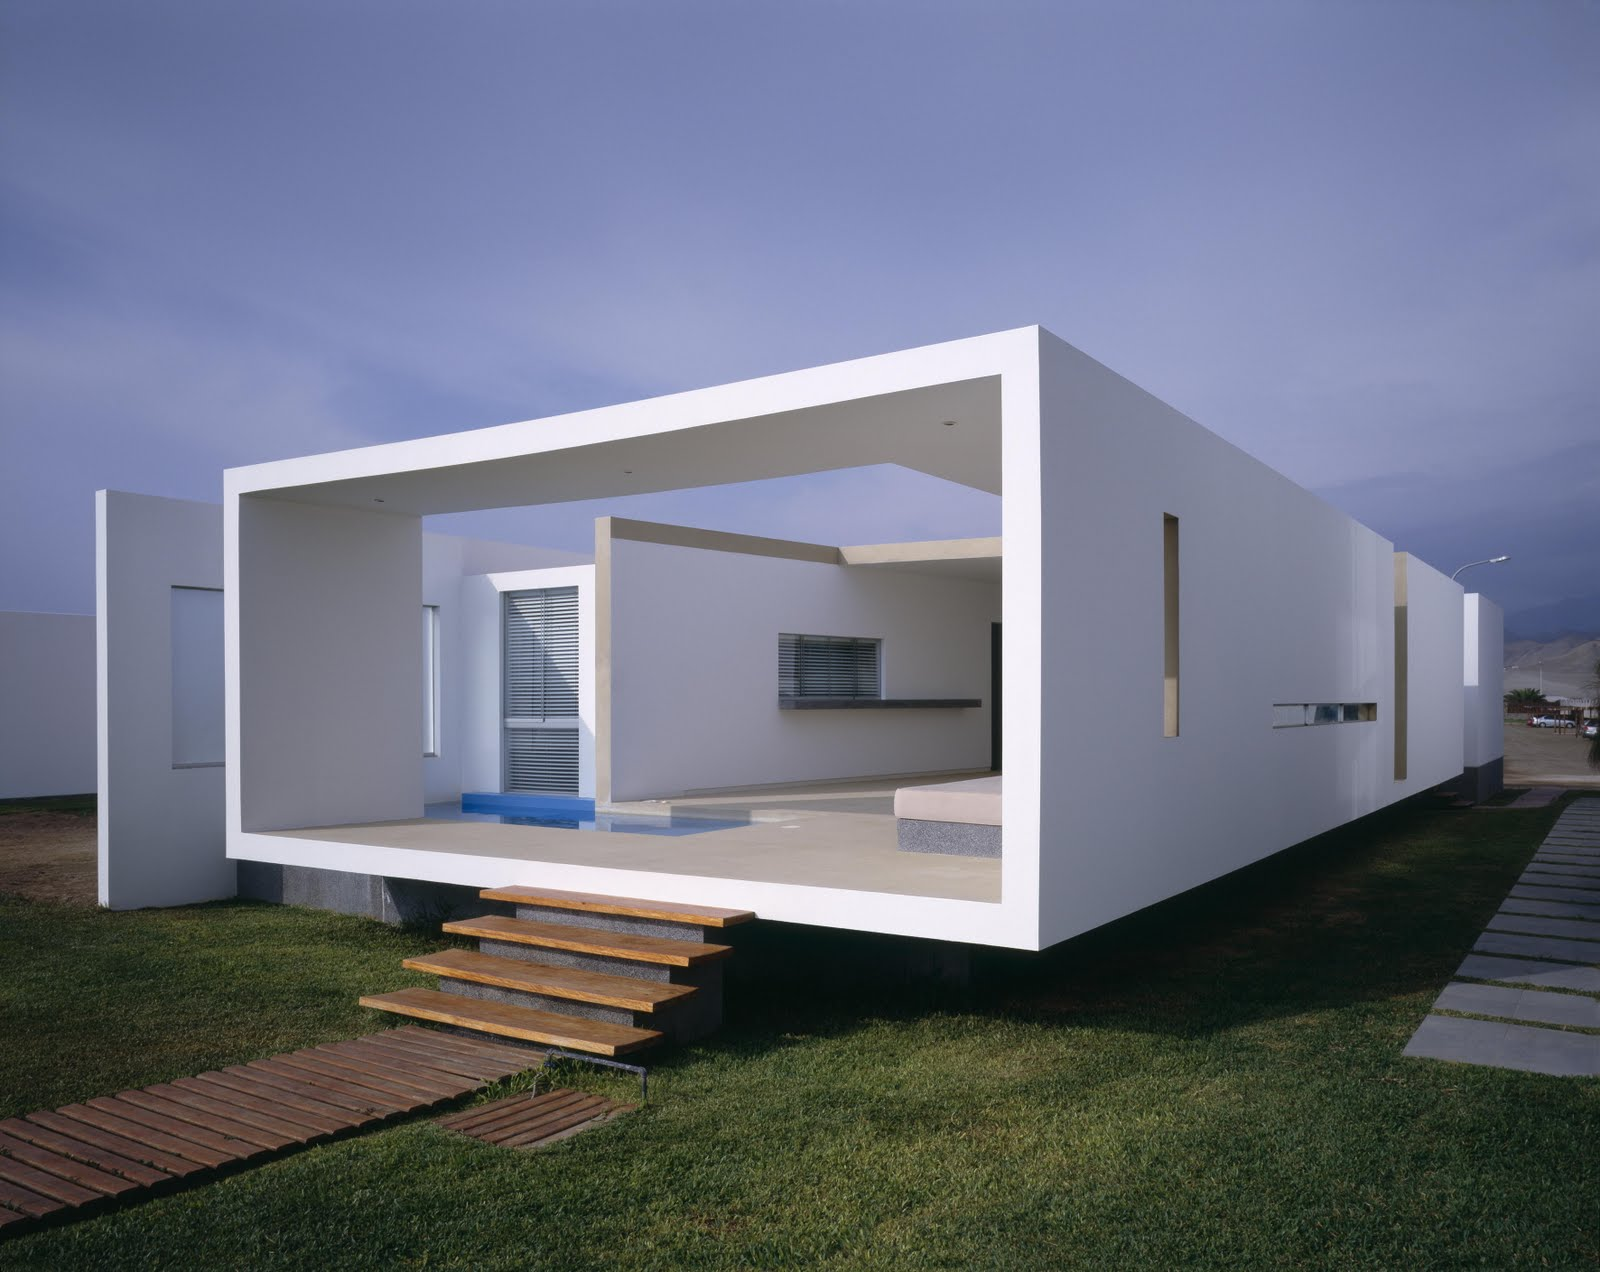 Habitar casa en playa las arenas for Minimalist box house design